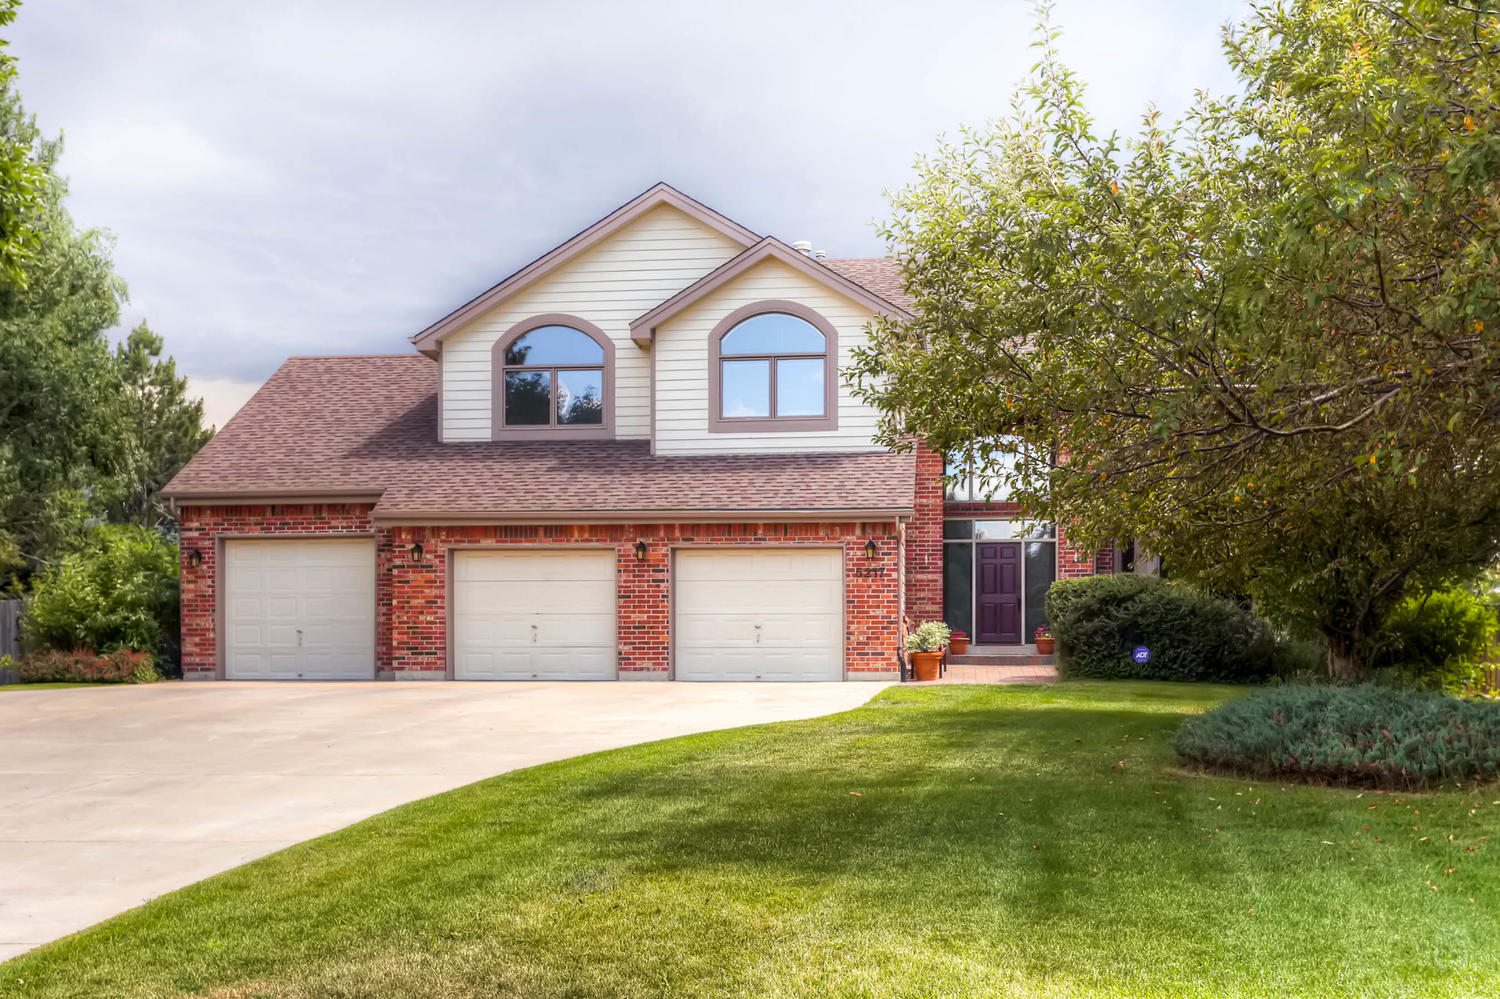 Single Family Home for Sale at Upscale Country Club Home 5217 Pinehurst Dr Boulder, Colorado, 80301 United States